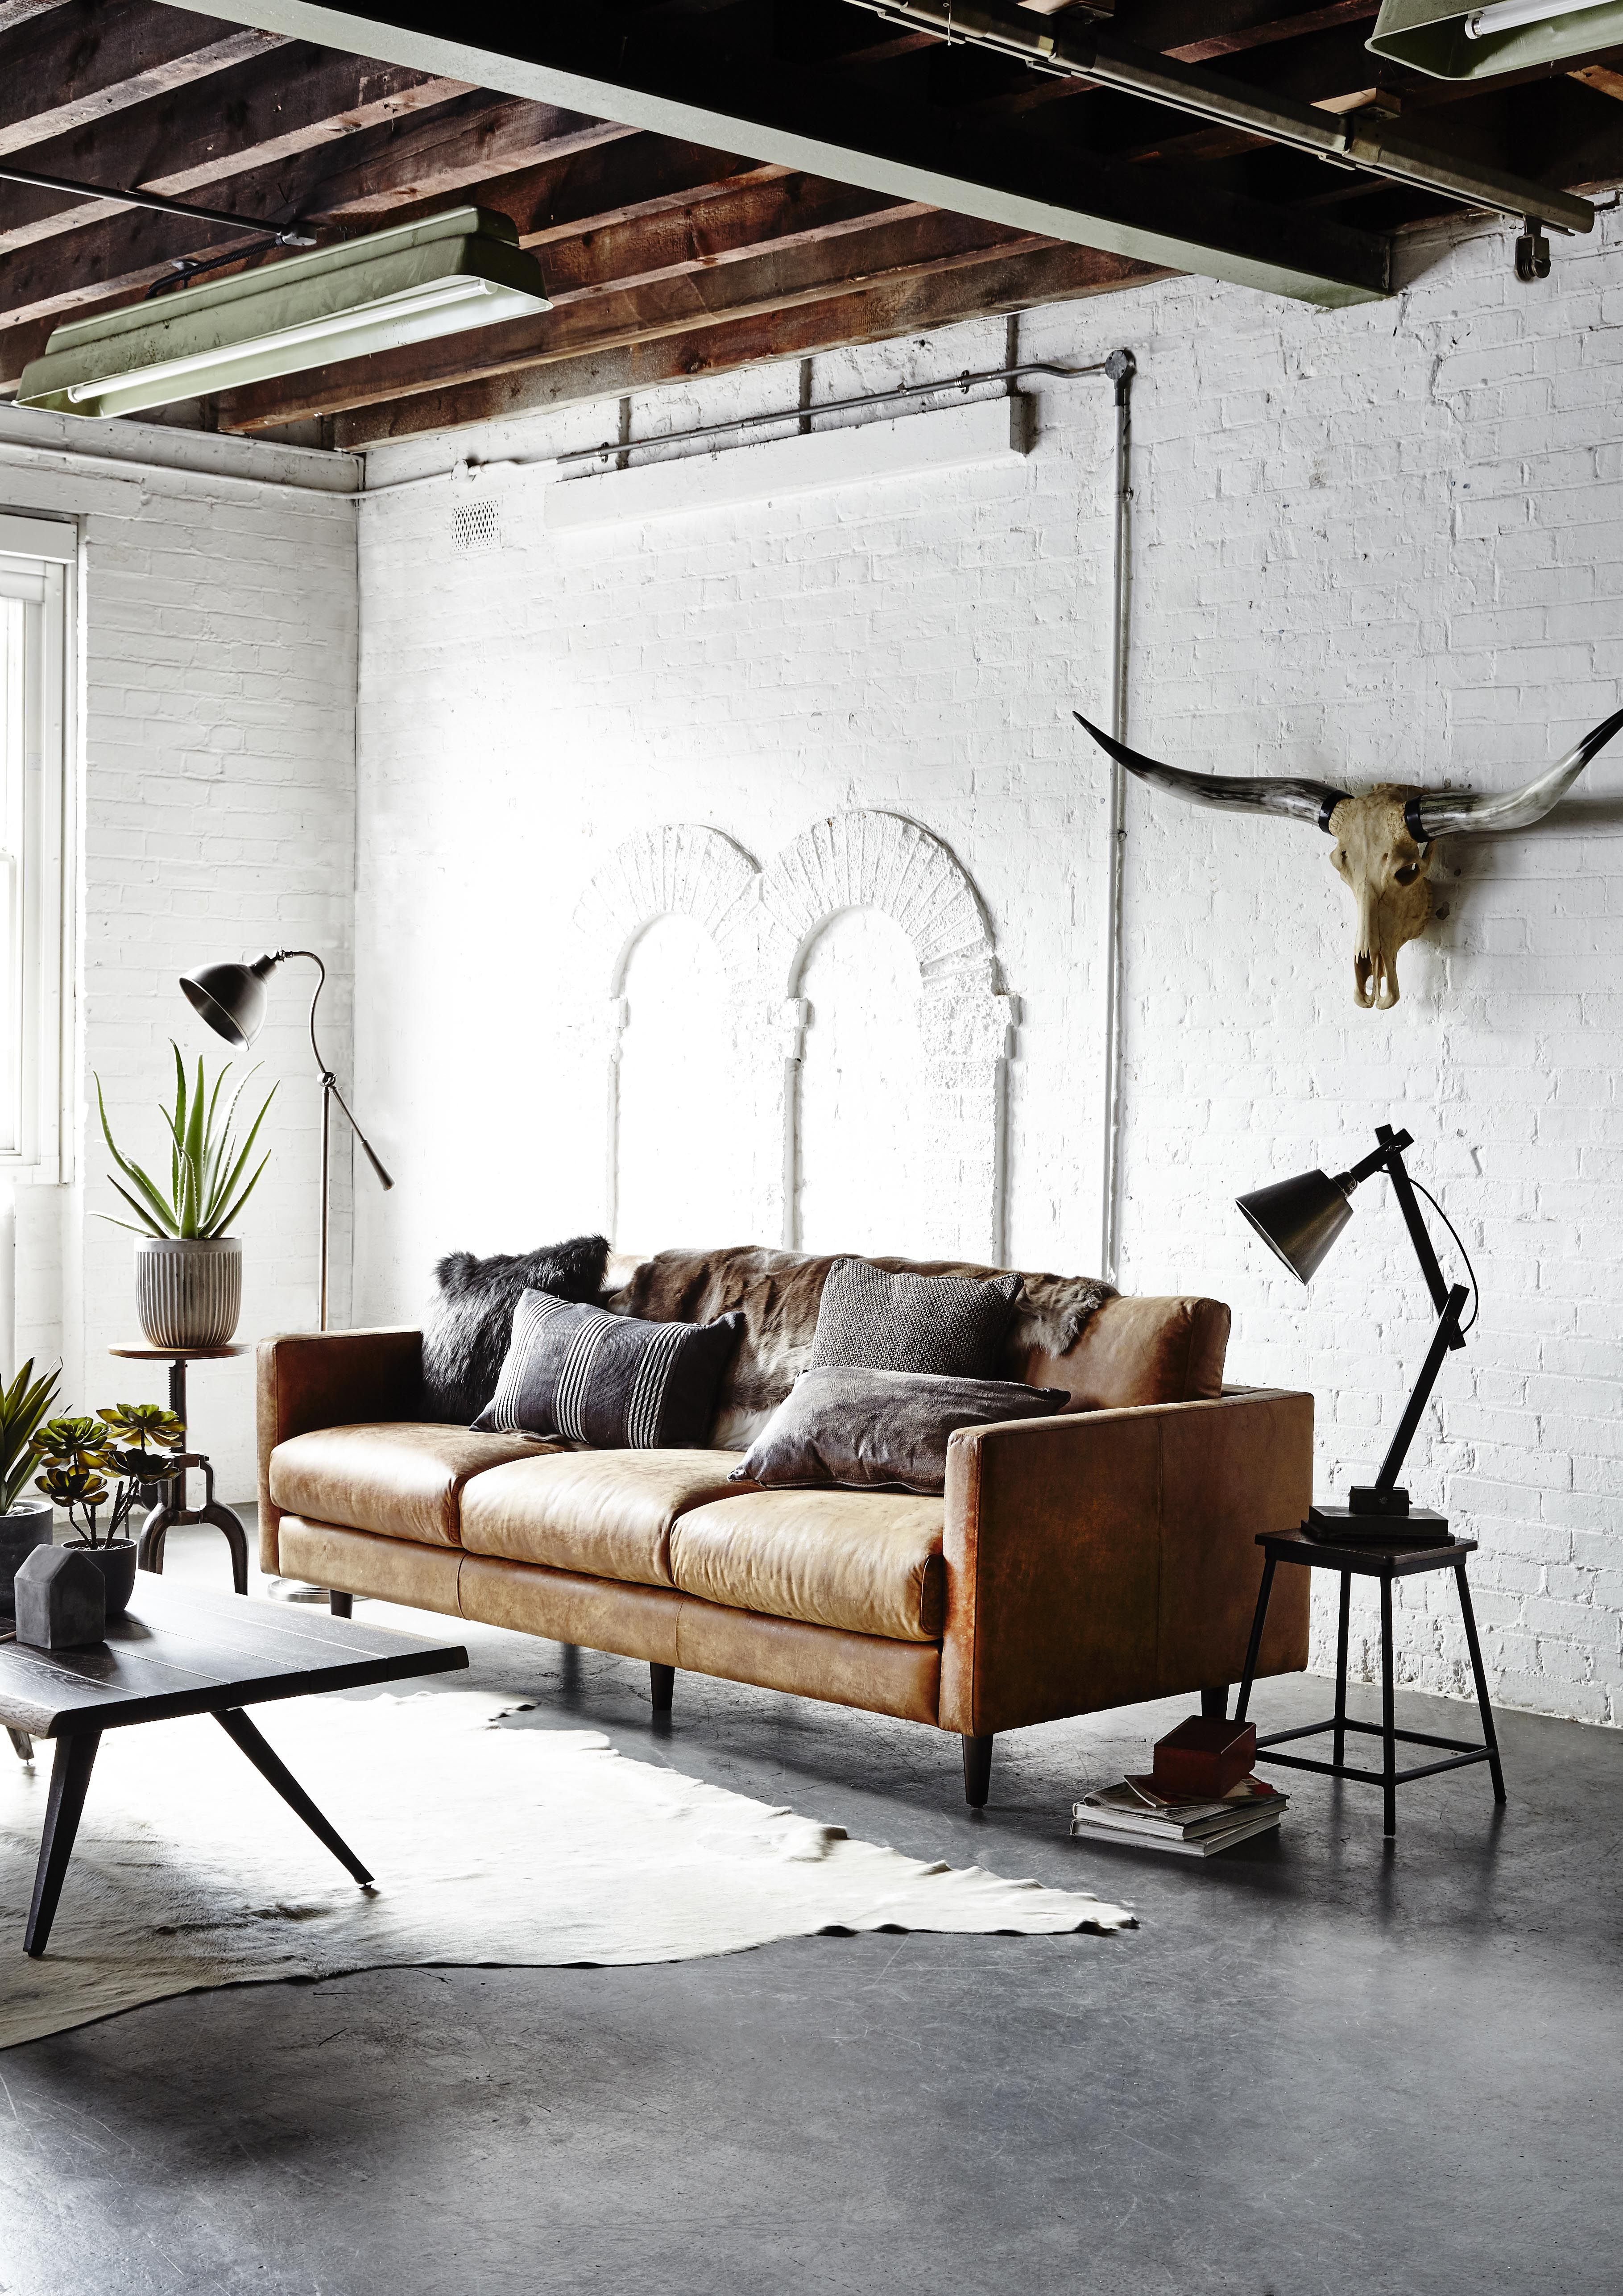 Mix Leather With Metal For A Hardwearing Industrial Look Barkerandstonehouse Interiors